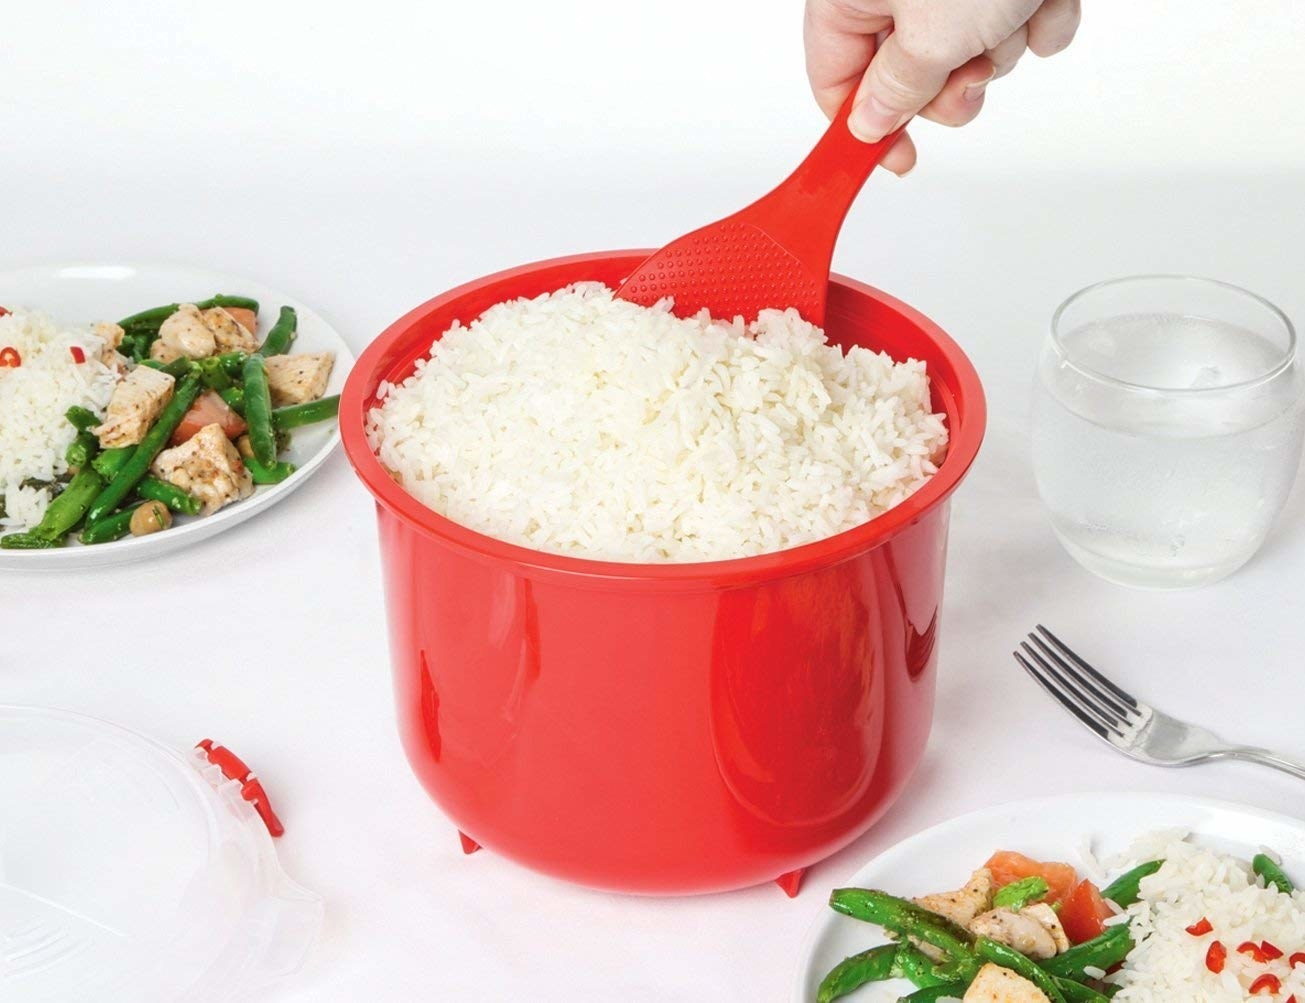 A hand scooping rice from the red plastic steamer with a paddle